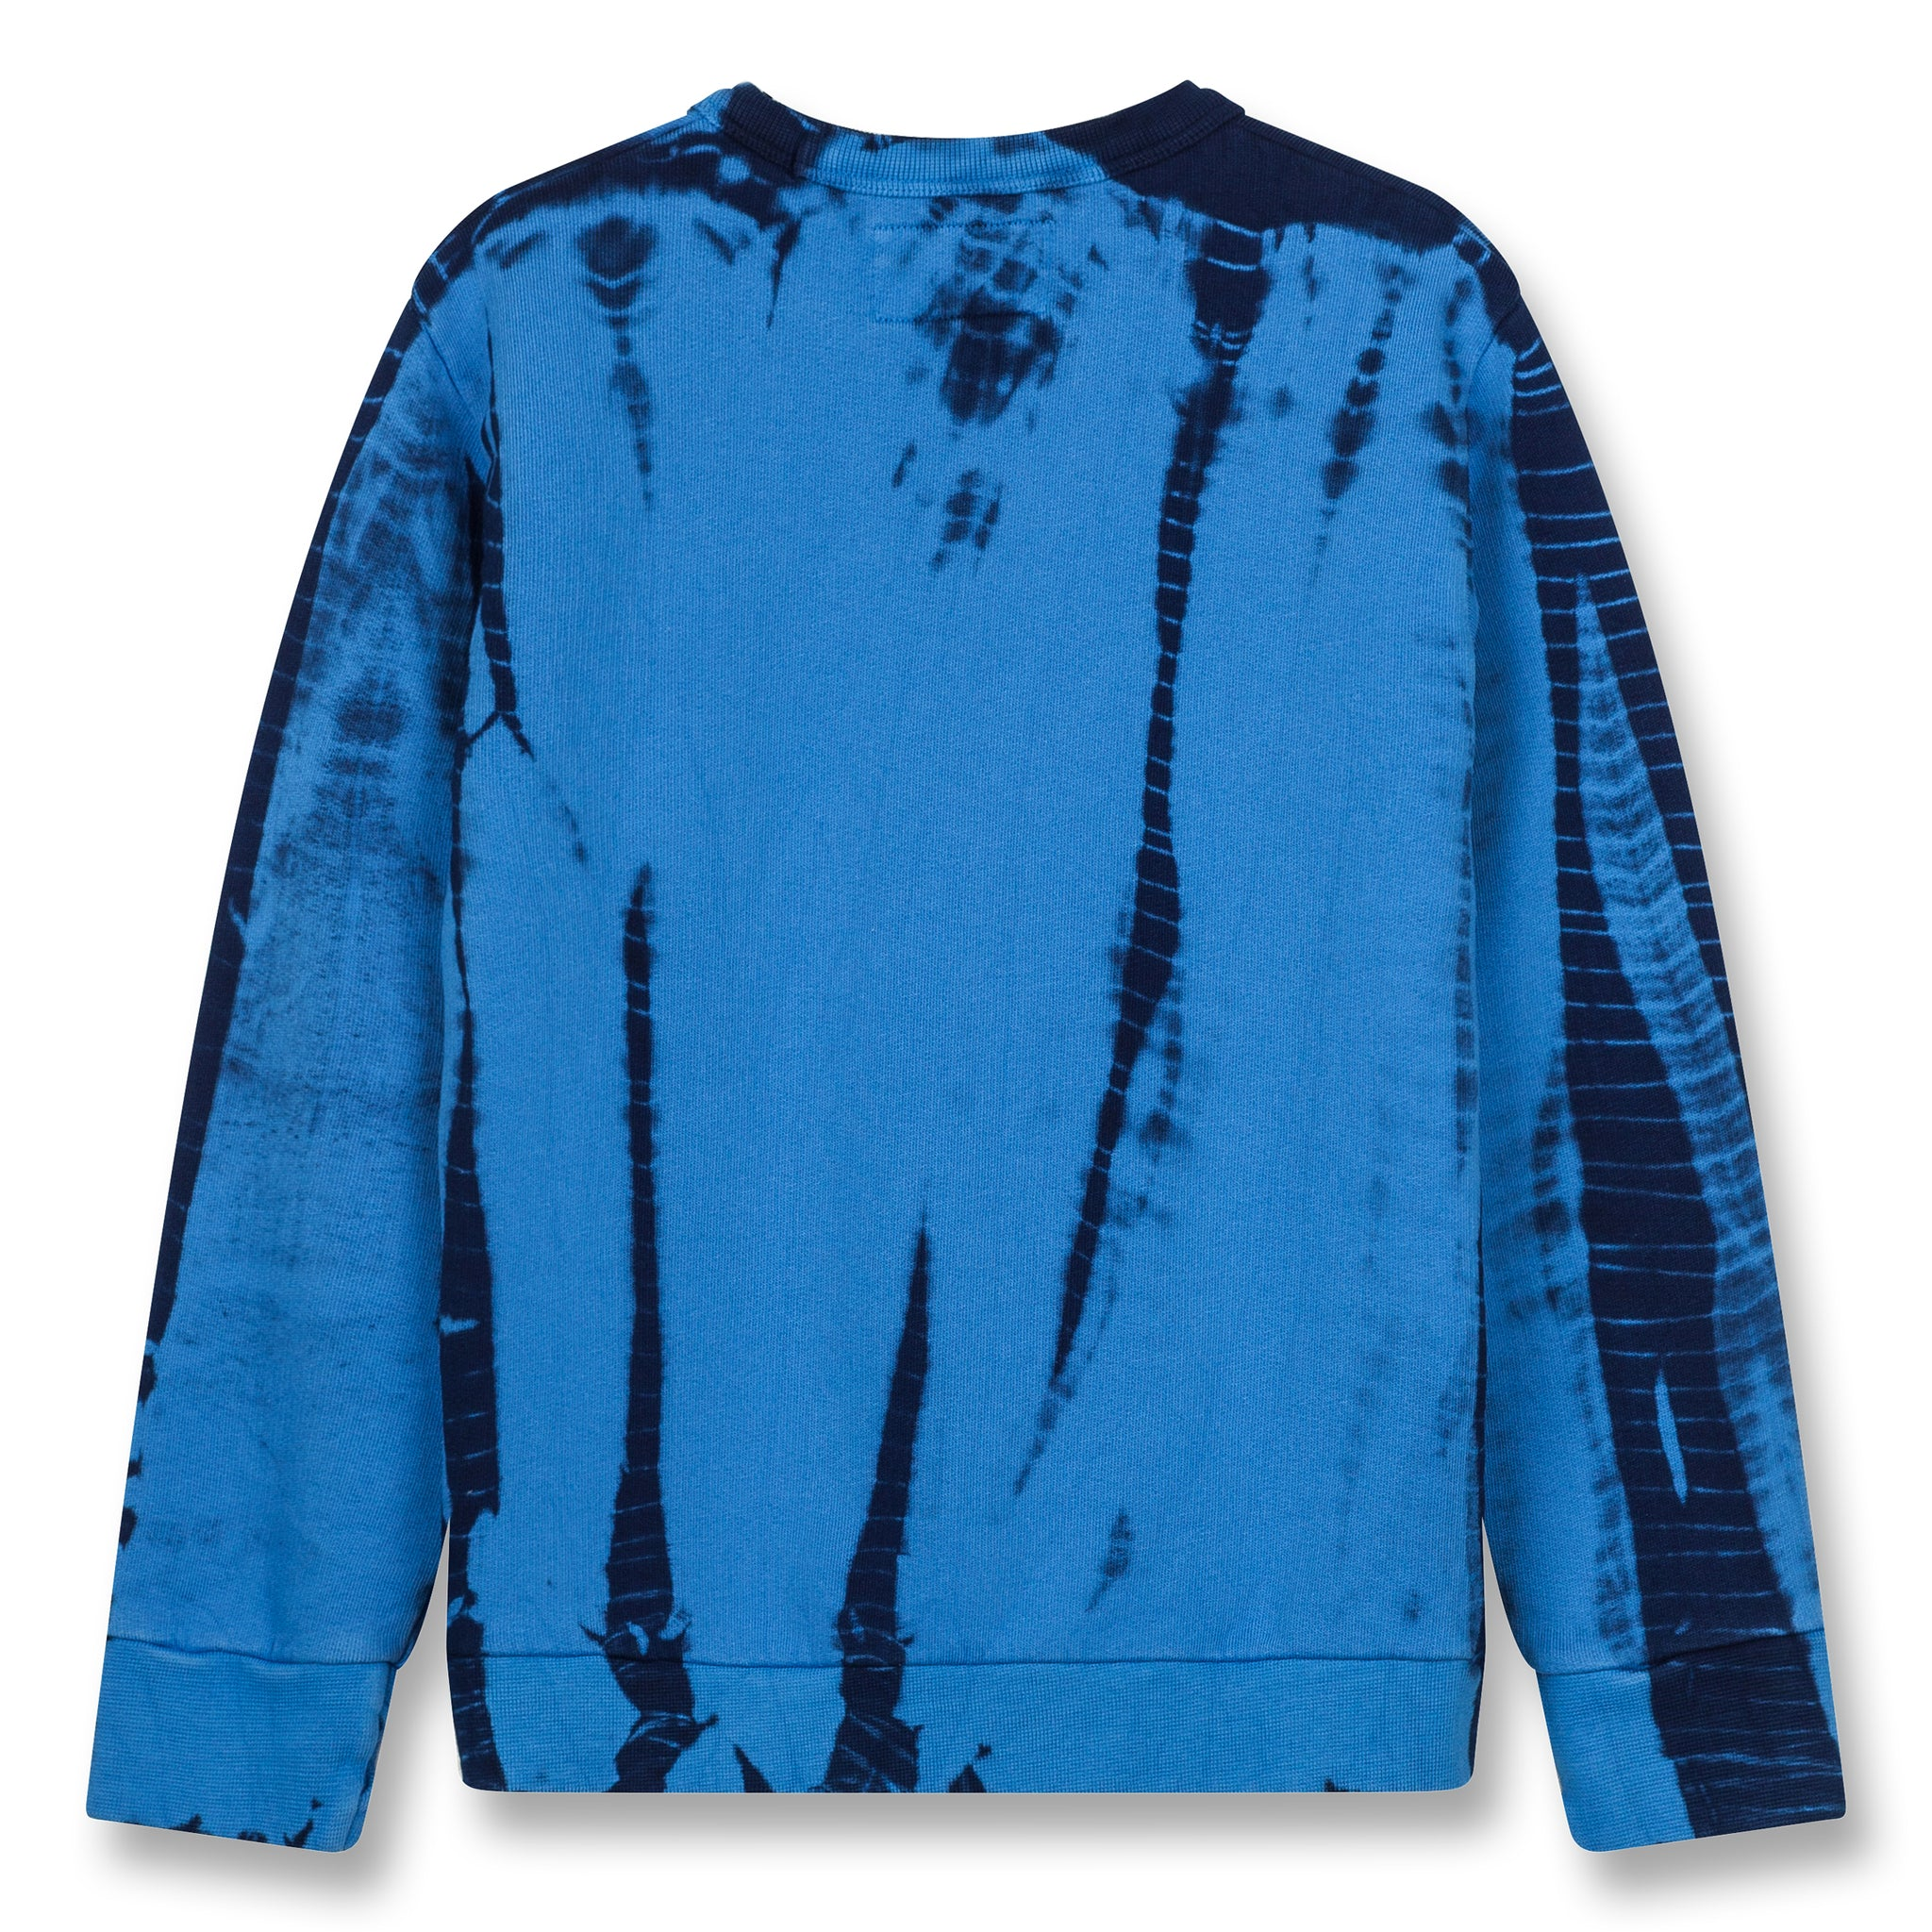 BRIAN Sharp Blue Bamboo Dye - Crew Neck Sweatshirt 2